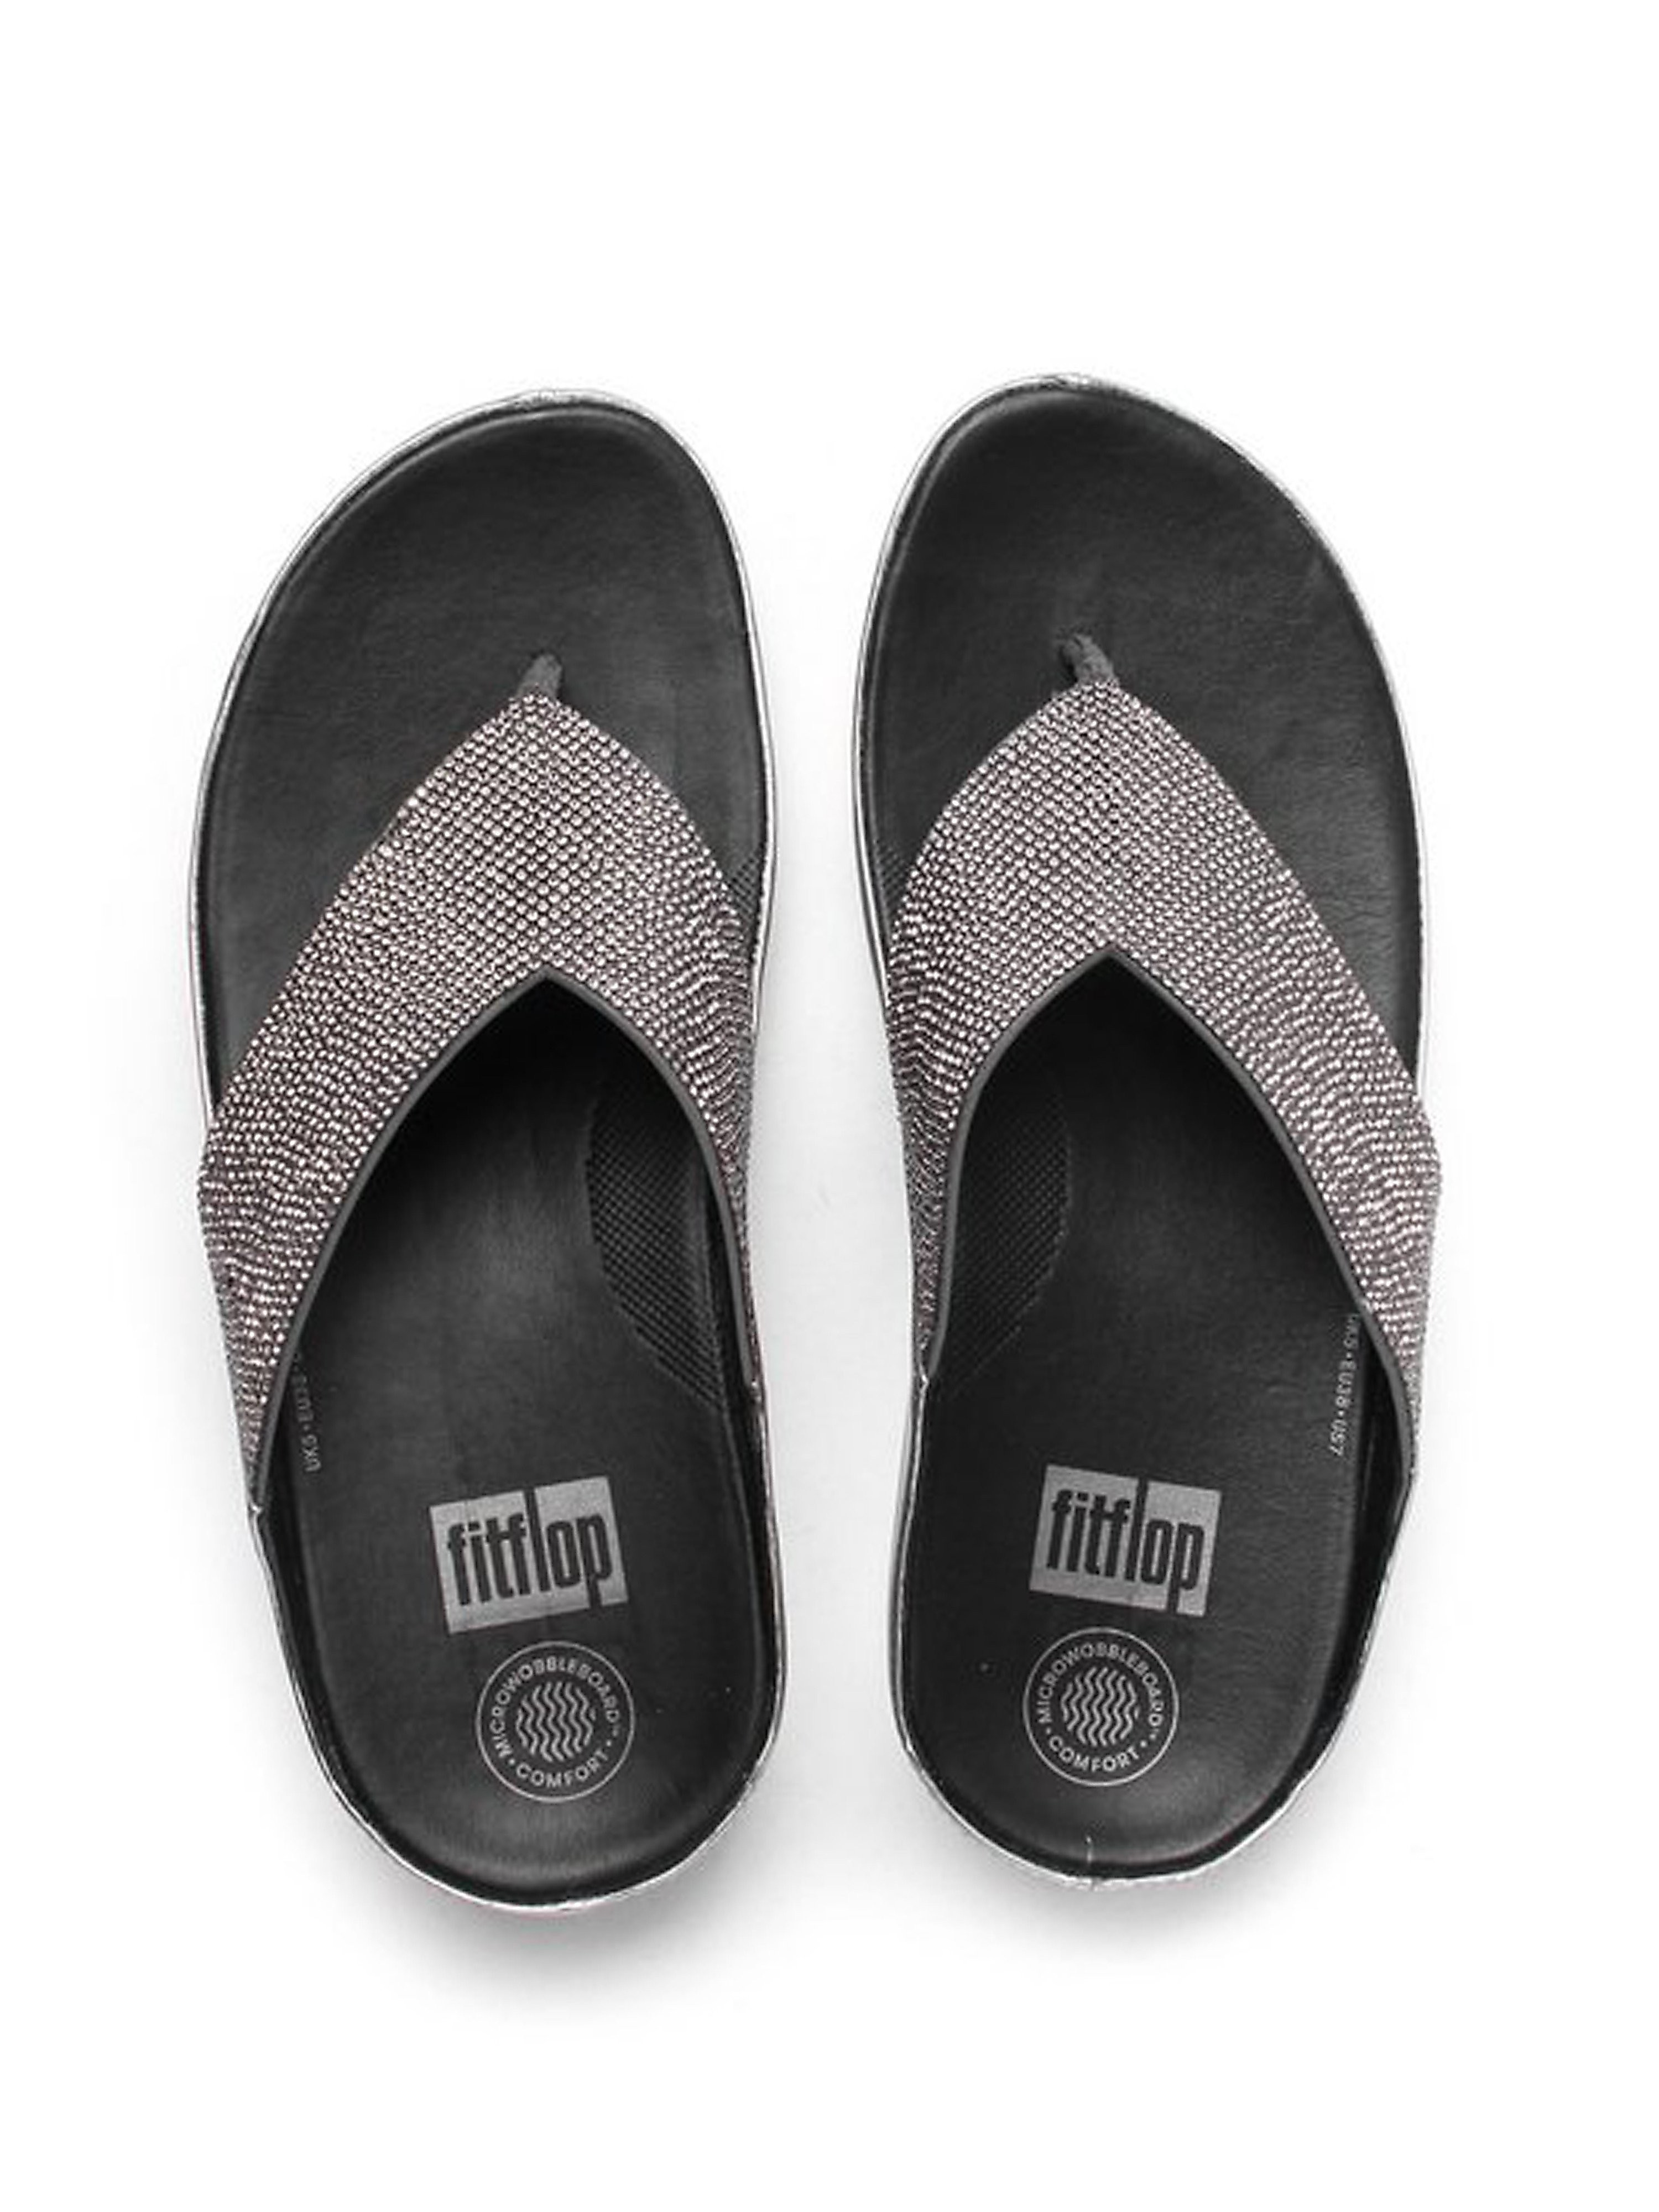 FitFlop Women's Crystall Toe-Post Slip On Sandals - Pewter